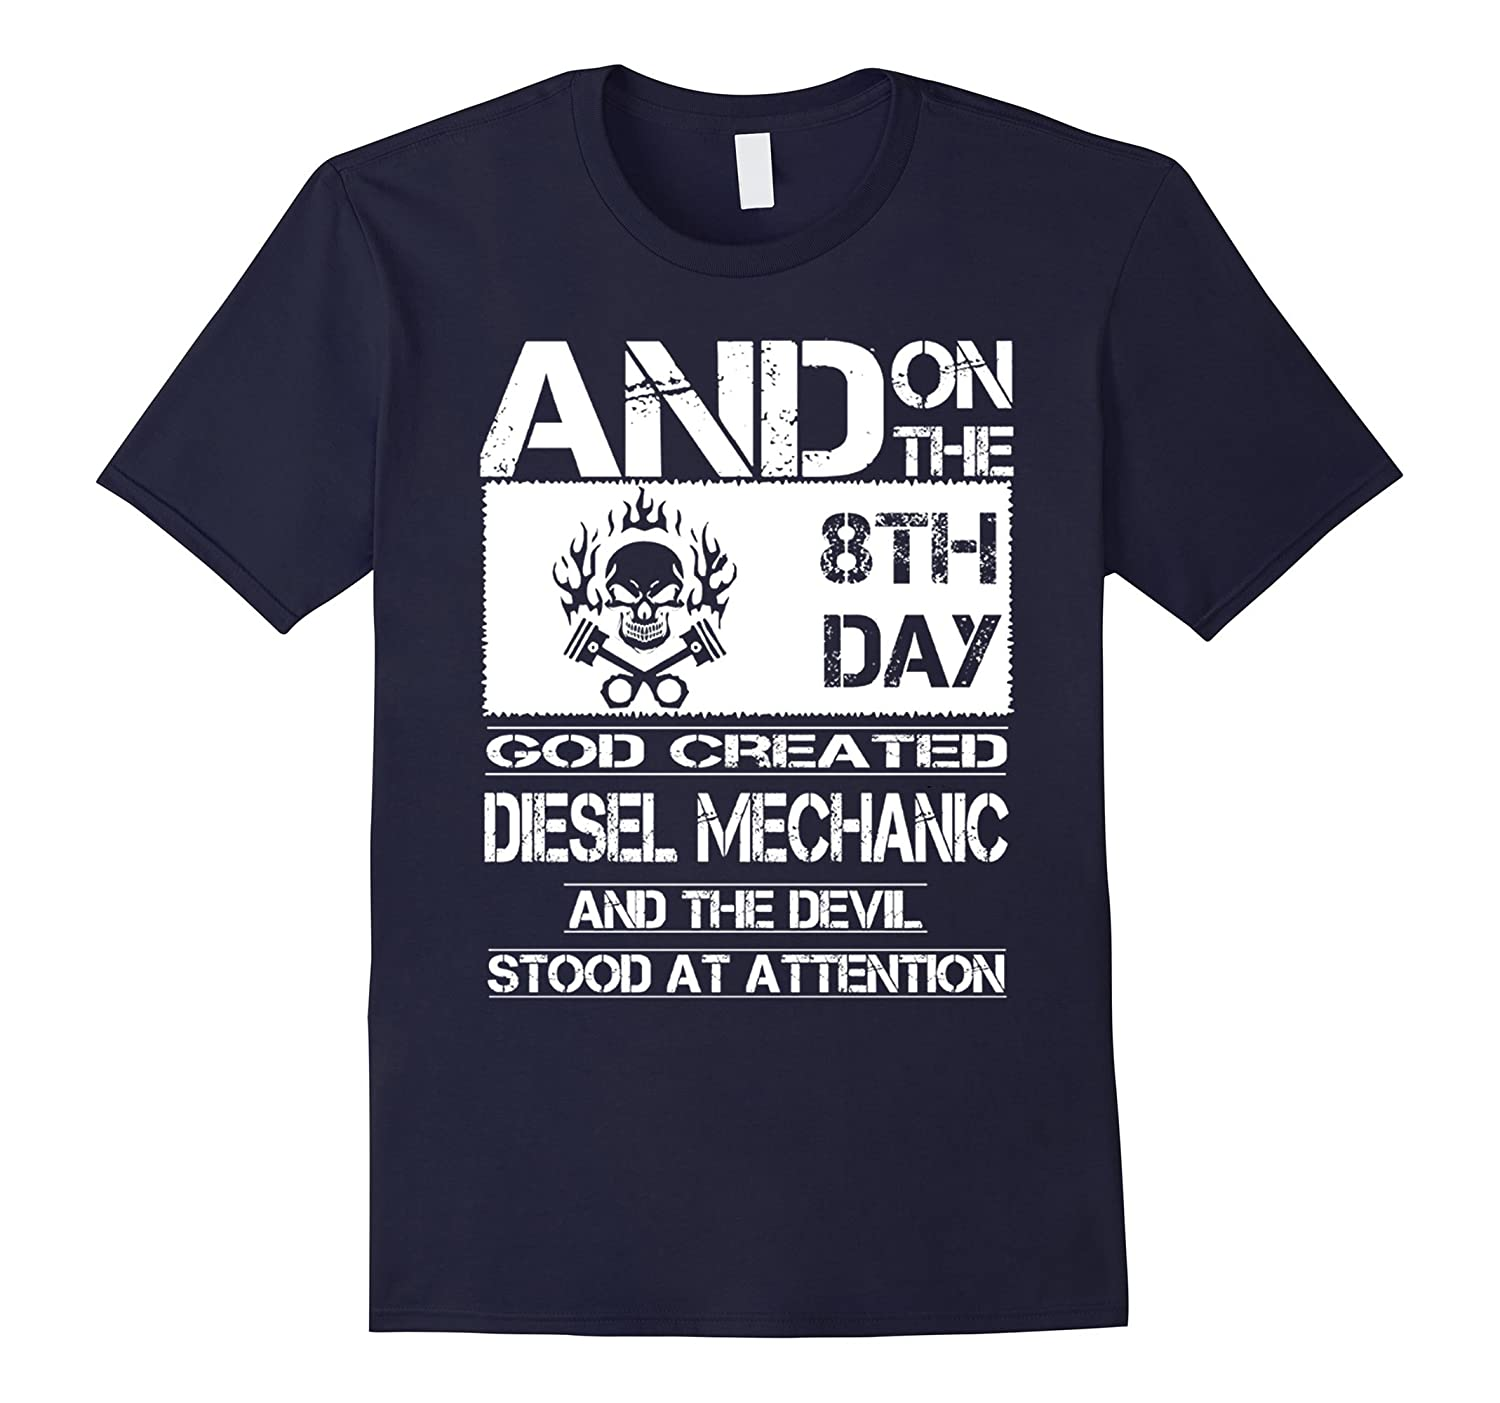 91030cce6 Funny Diesel Mechanic Saying Quote, Proud Job title T-Shirt-BN ...